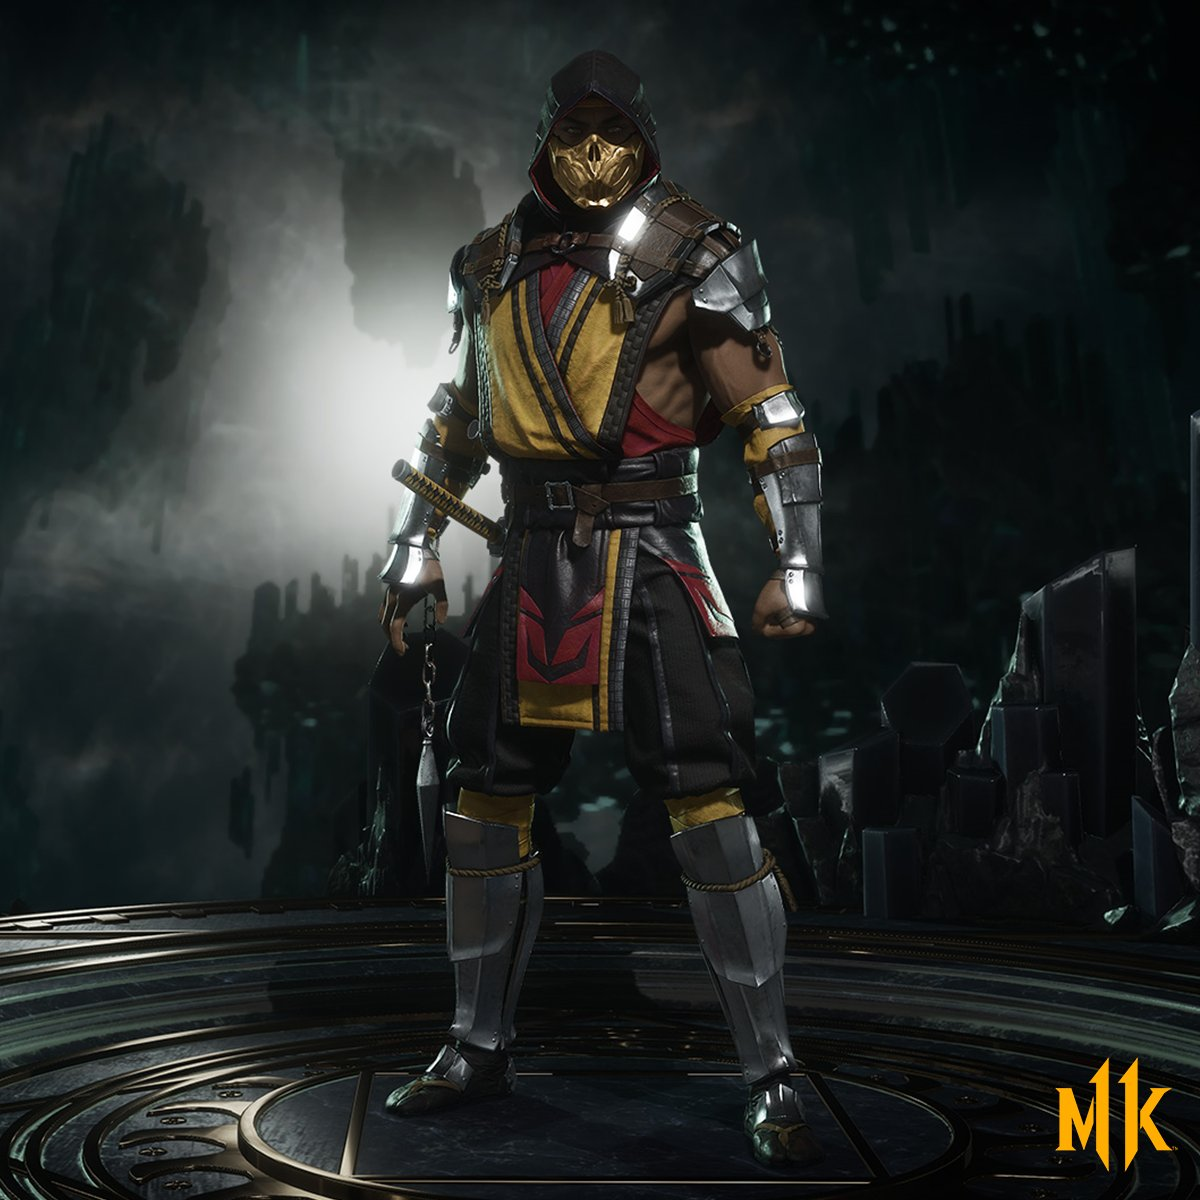 new scorpion mk11